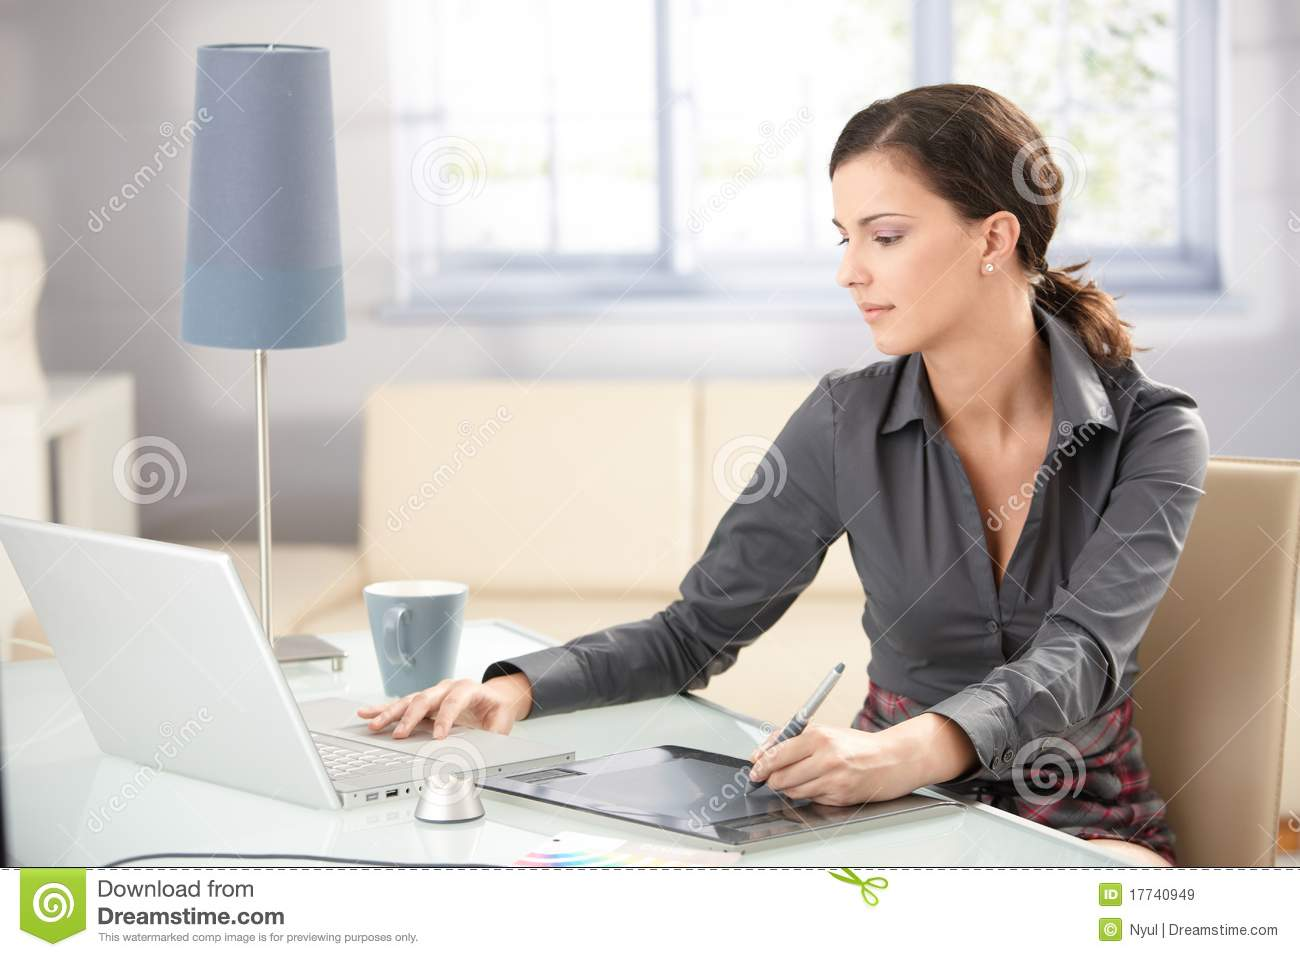 Young Graphic Designer Working At Home Stock Image - Image of ...